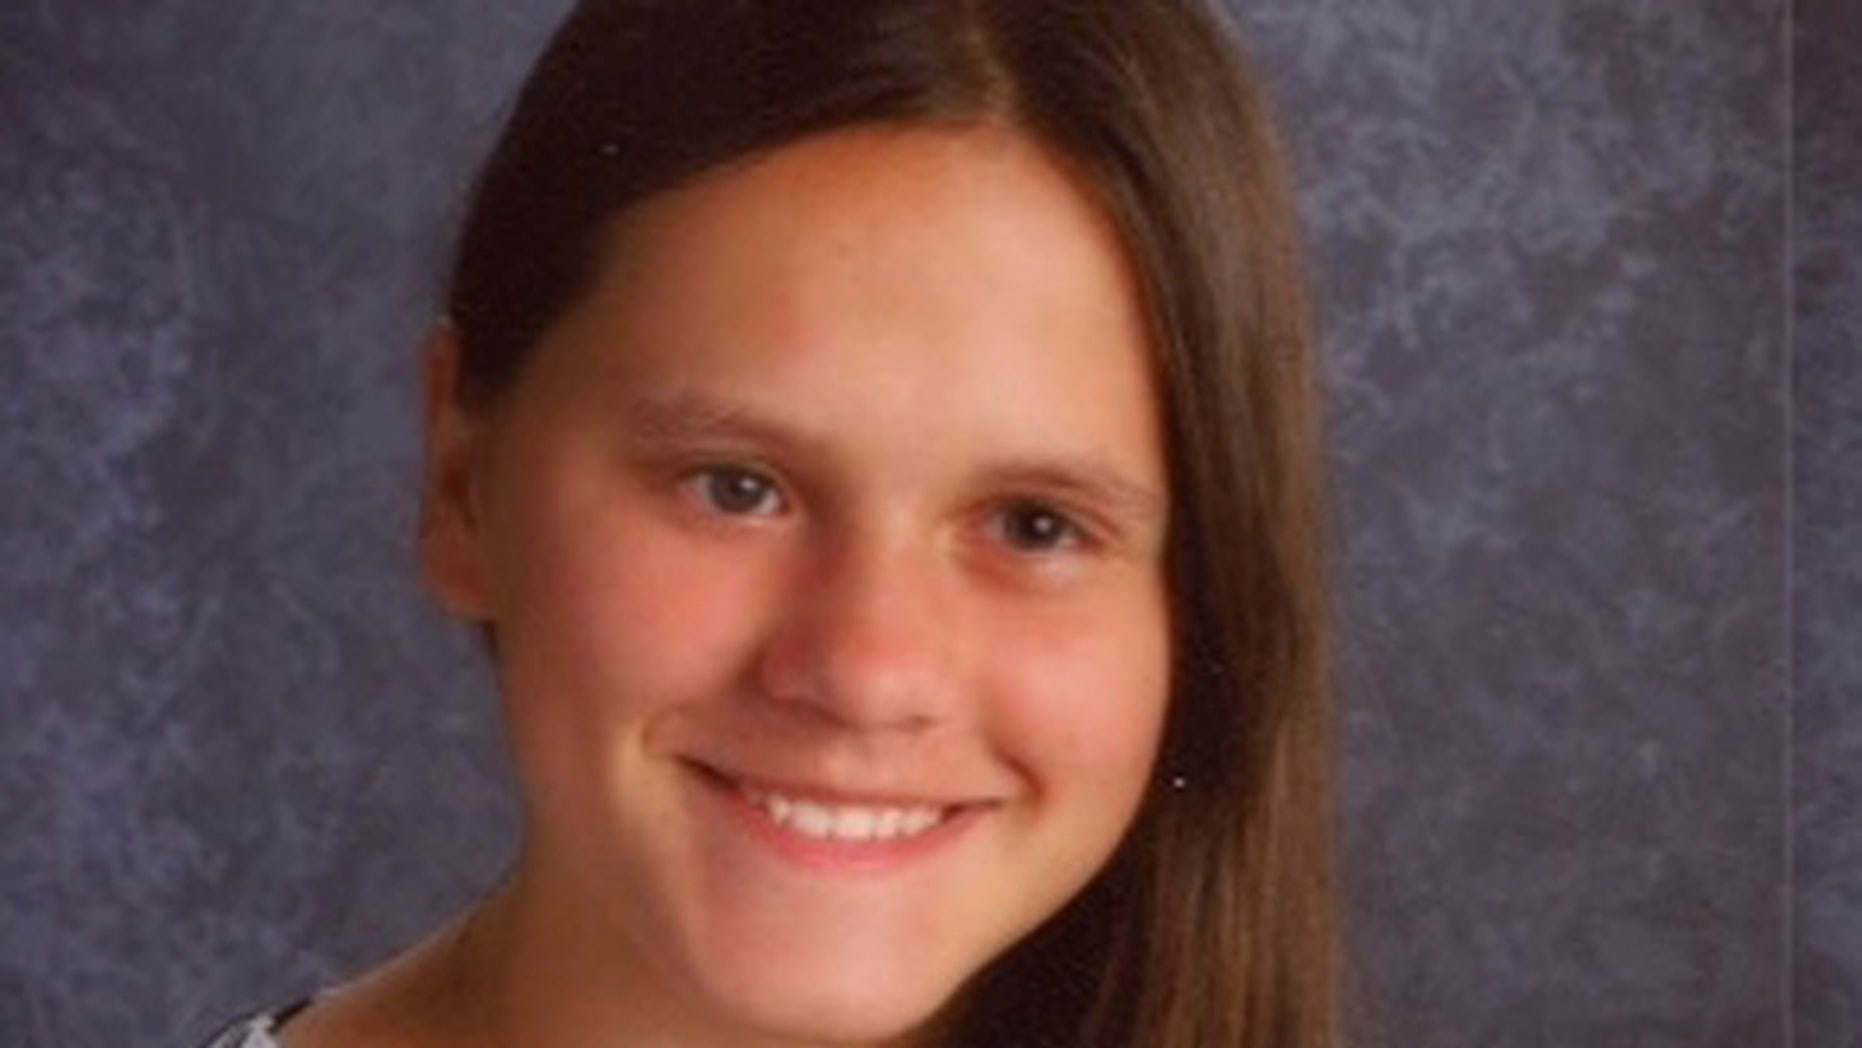 This undated photo, provided by the Mint Hill Police Department, shows Kayla Campbell.